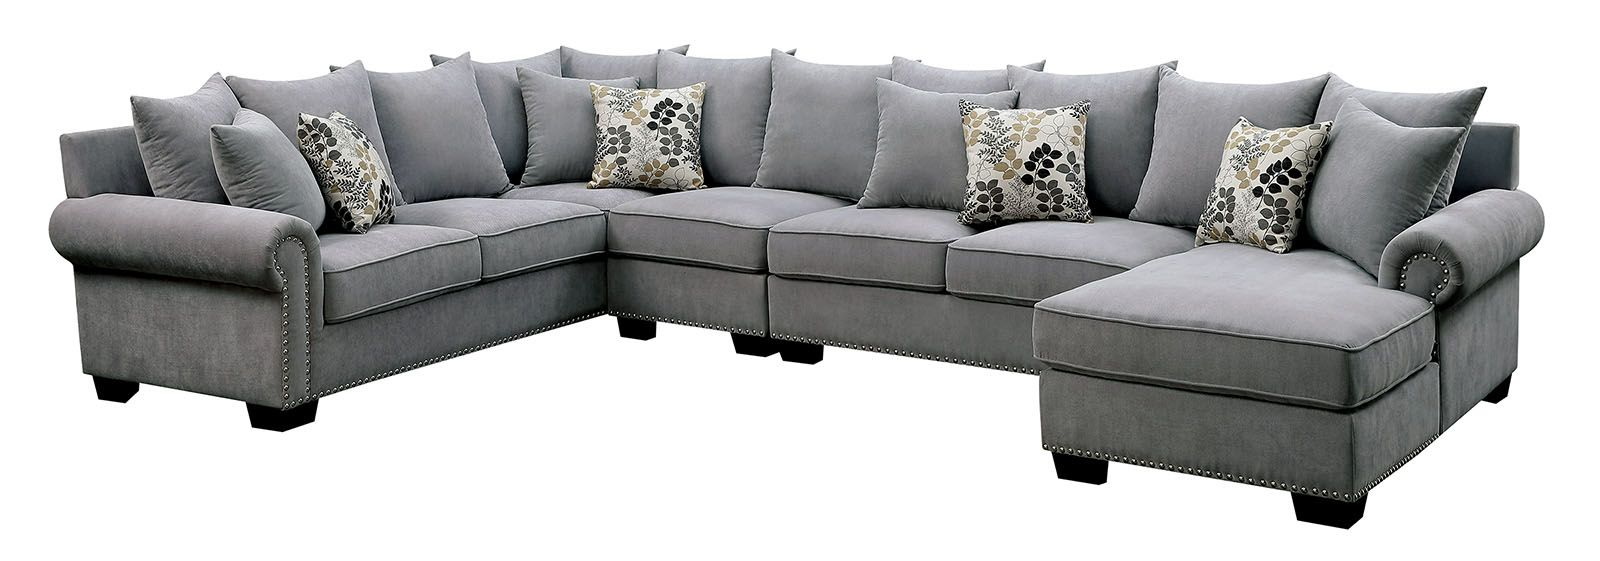 Skyler II Transitional Gray Fabric Upholstered Sectional ...